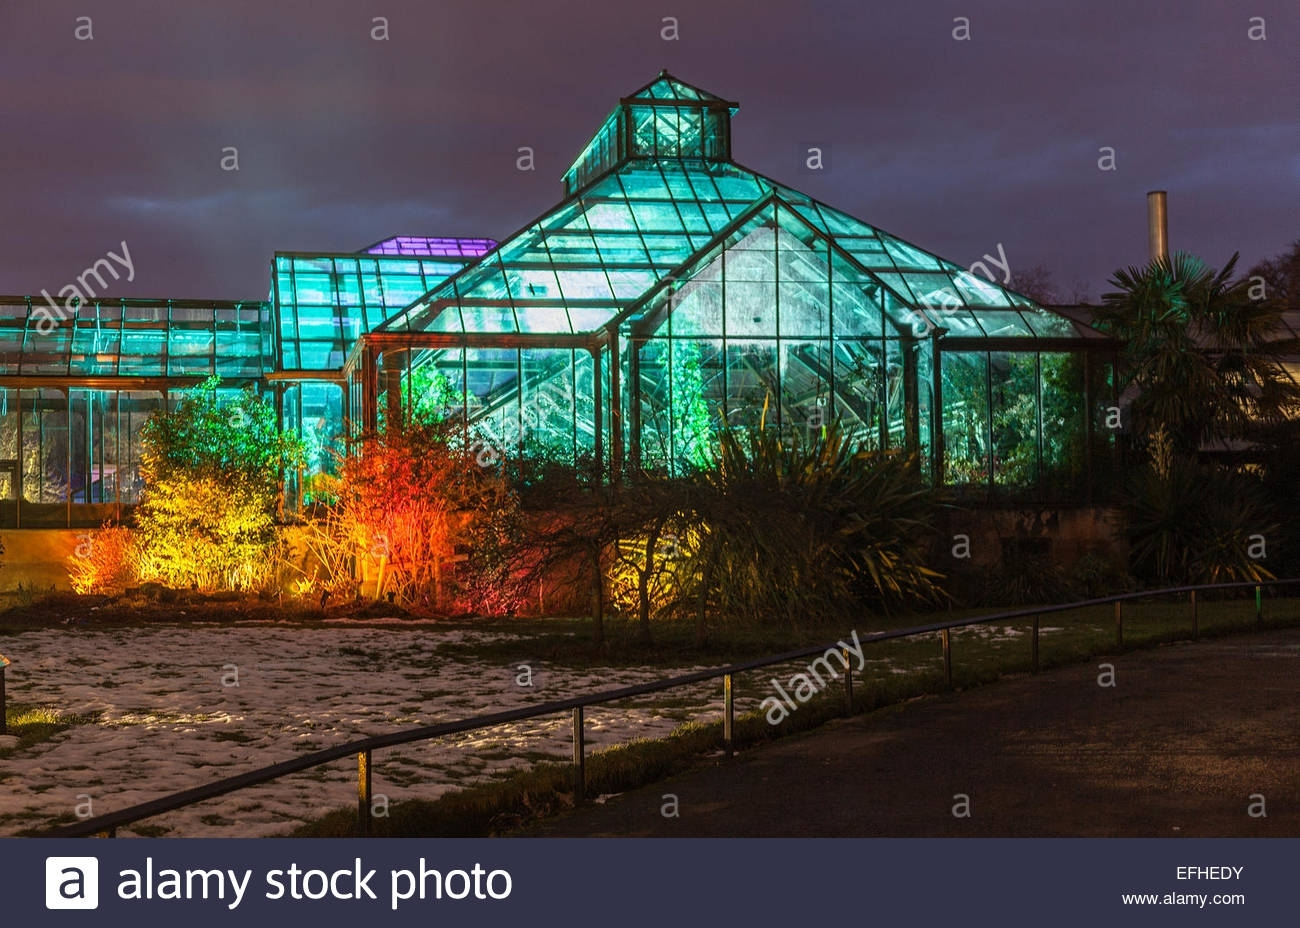 Glasgow Botanic Gardens Stock Photos & Glasgow Botanic Gardens in Botanic Garden Glasgow Light Show